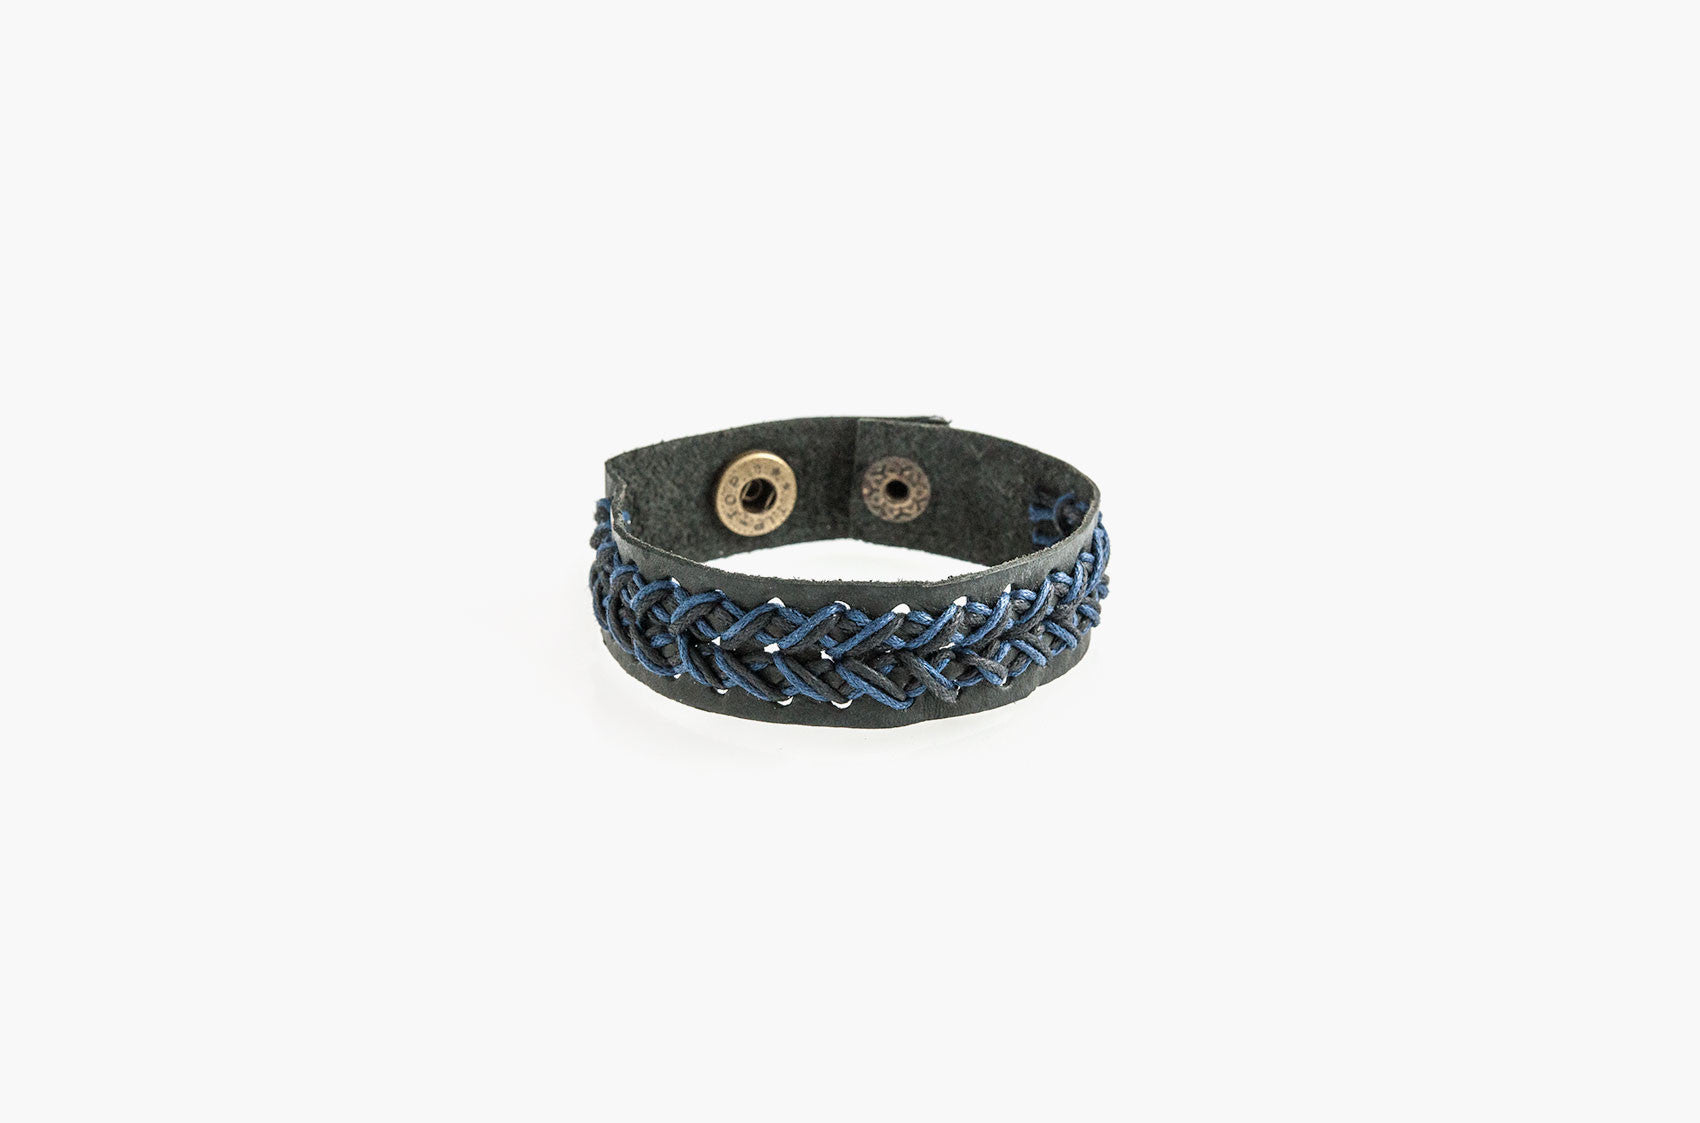 Black leather and blue cord stitched bracelet